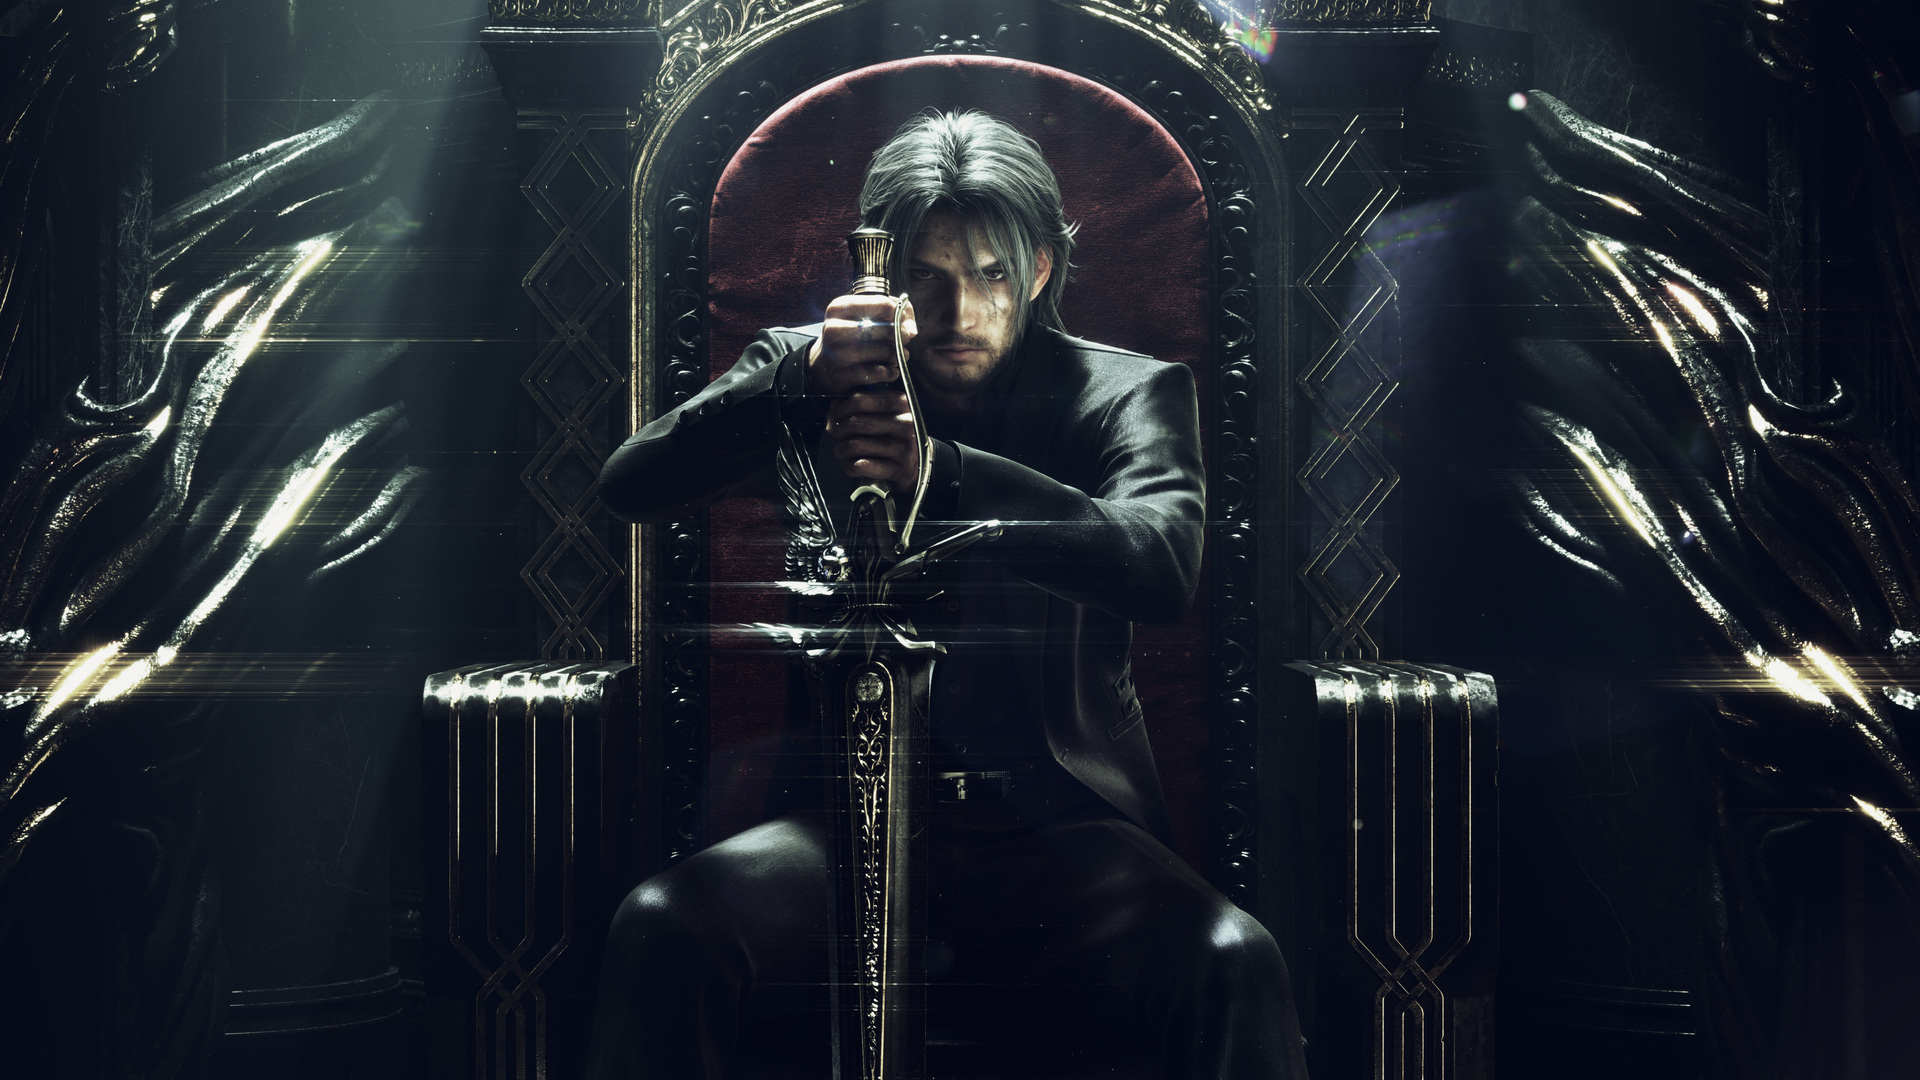 117 Final Fantasy Xv Hd Wallpapers: 1920x1080 Final Fantasy Xv Windows Edition 4k Laptop Full